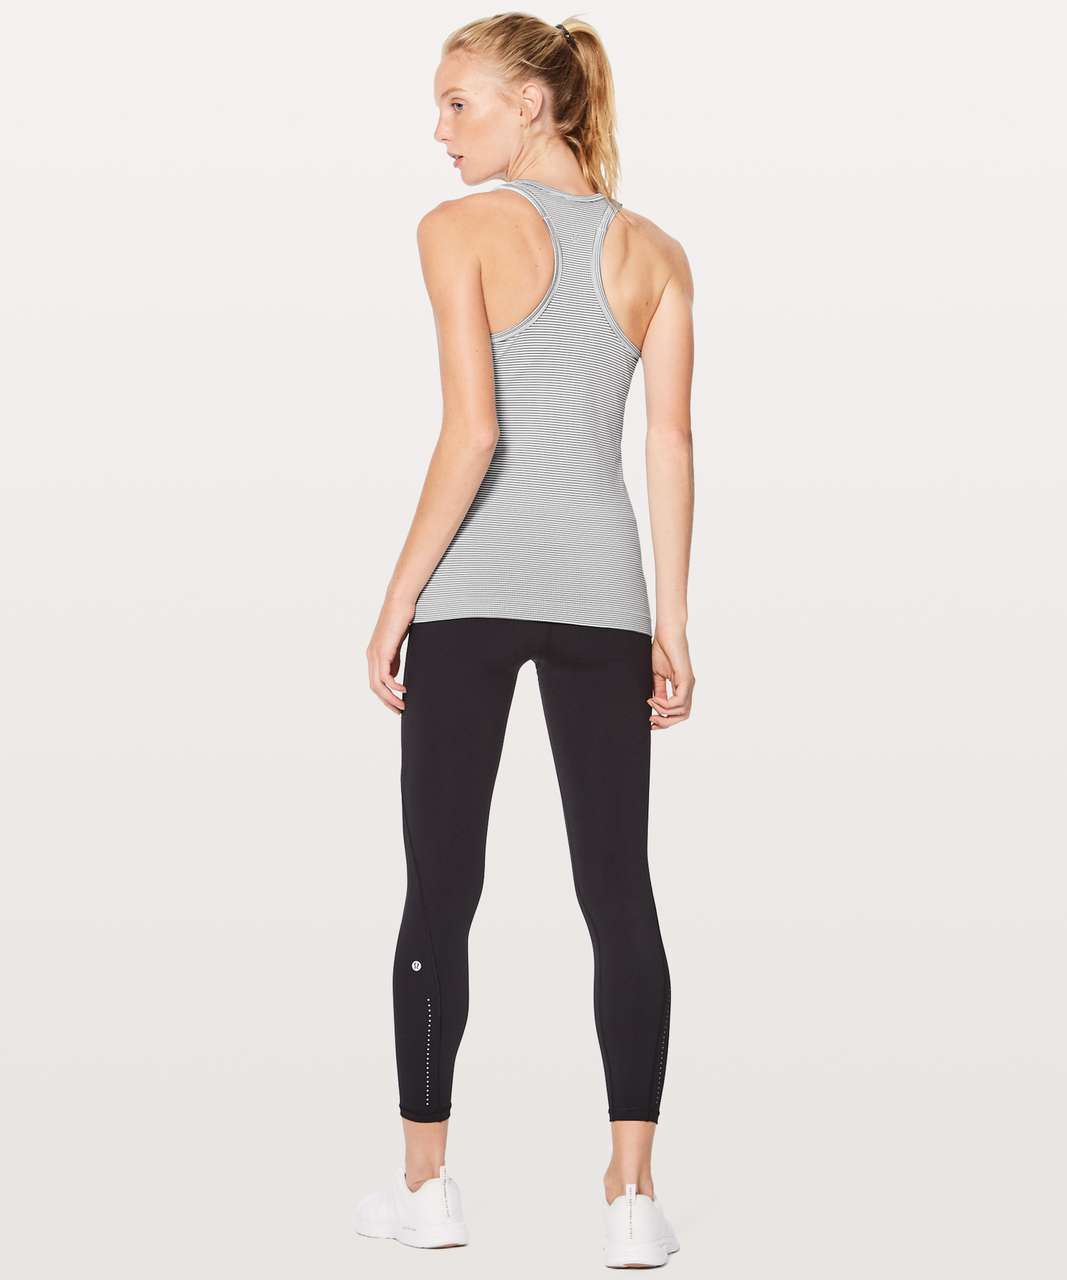 Lululemon Swiftly Tech Racerback - White / White / Black (First Release)